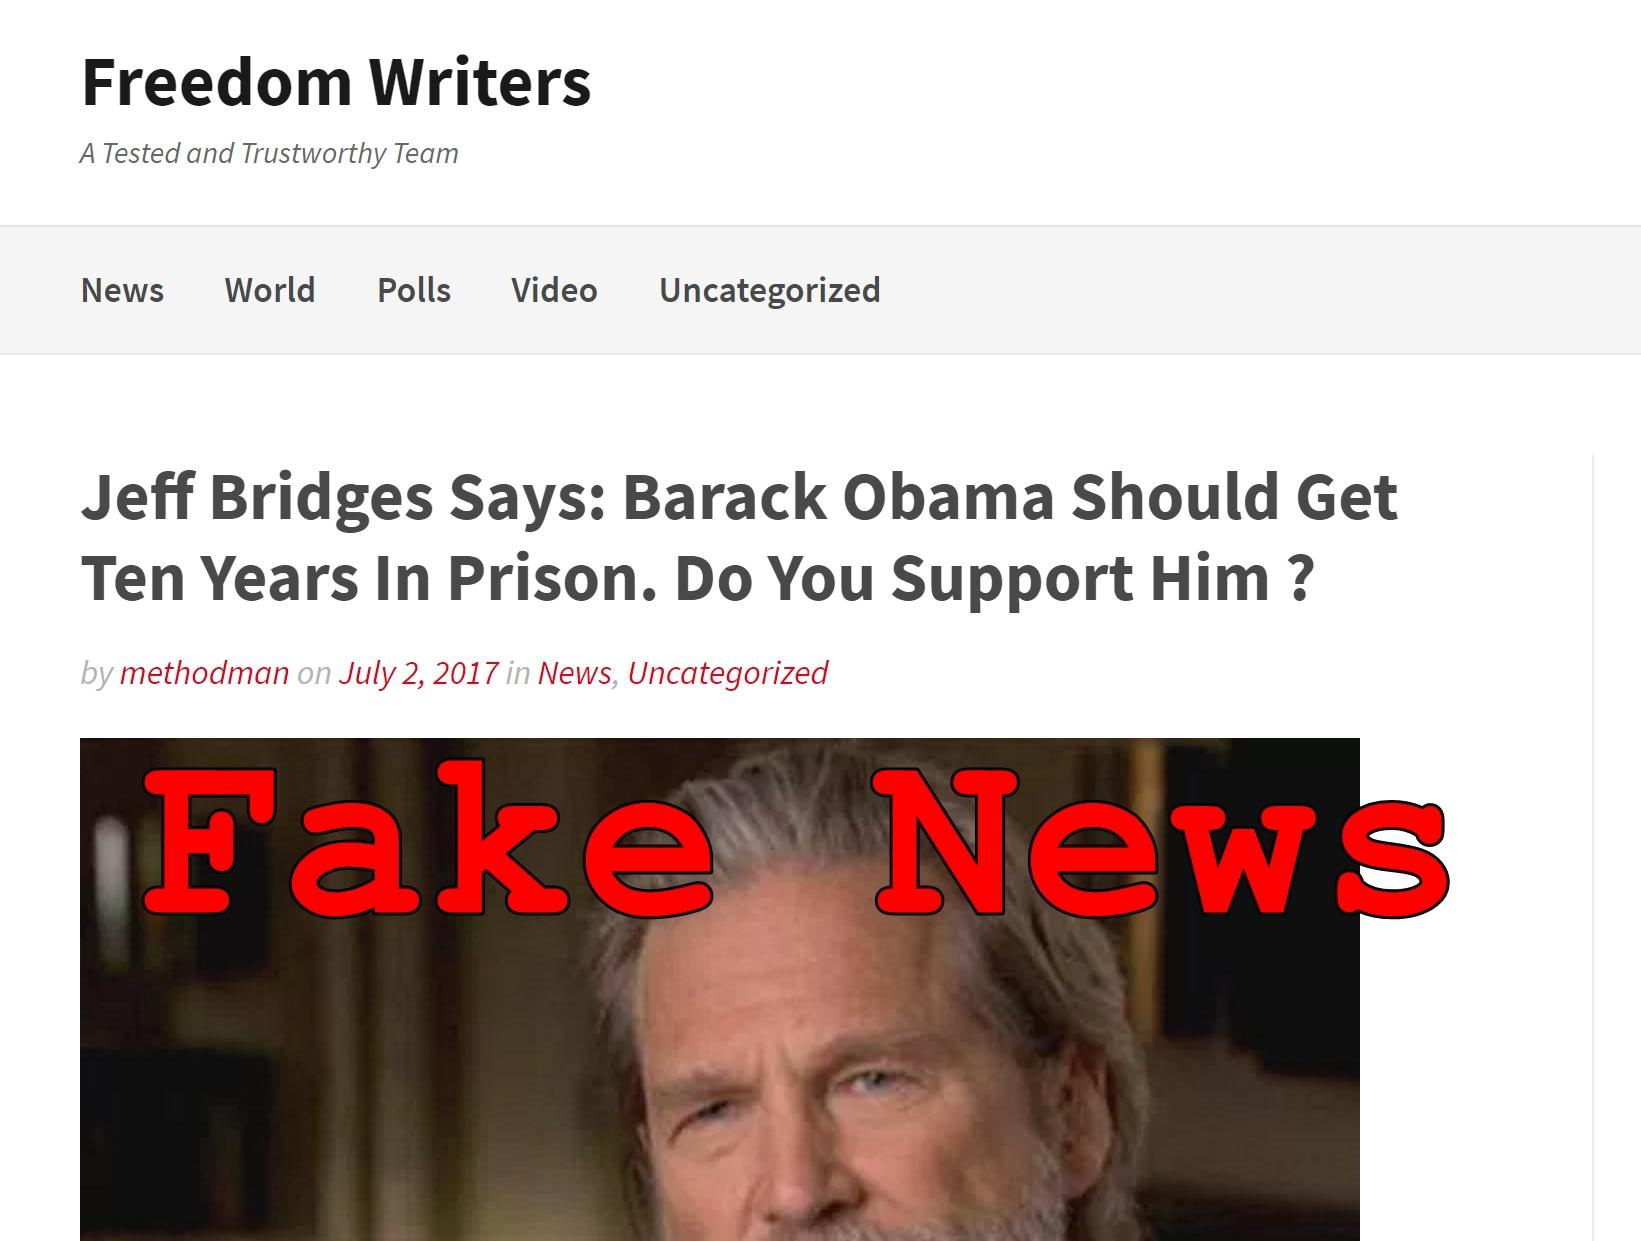 Fake News: Obama Should NOT Get Ten Years In Prison According To Jeff Bridges, Nicole Kidman or Clint Eastwood